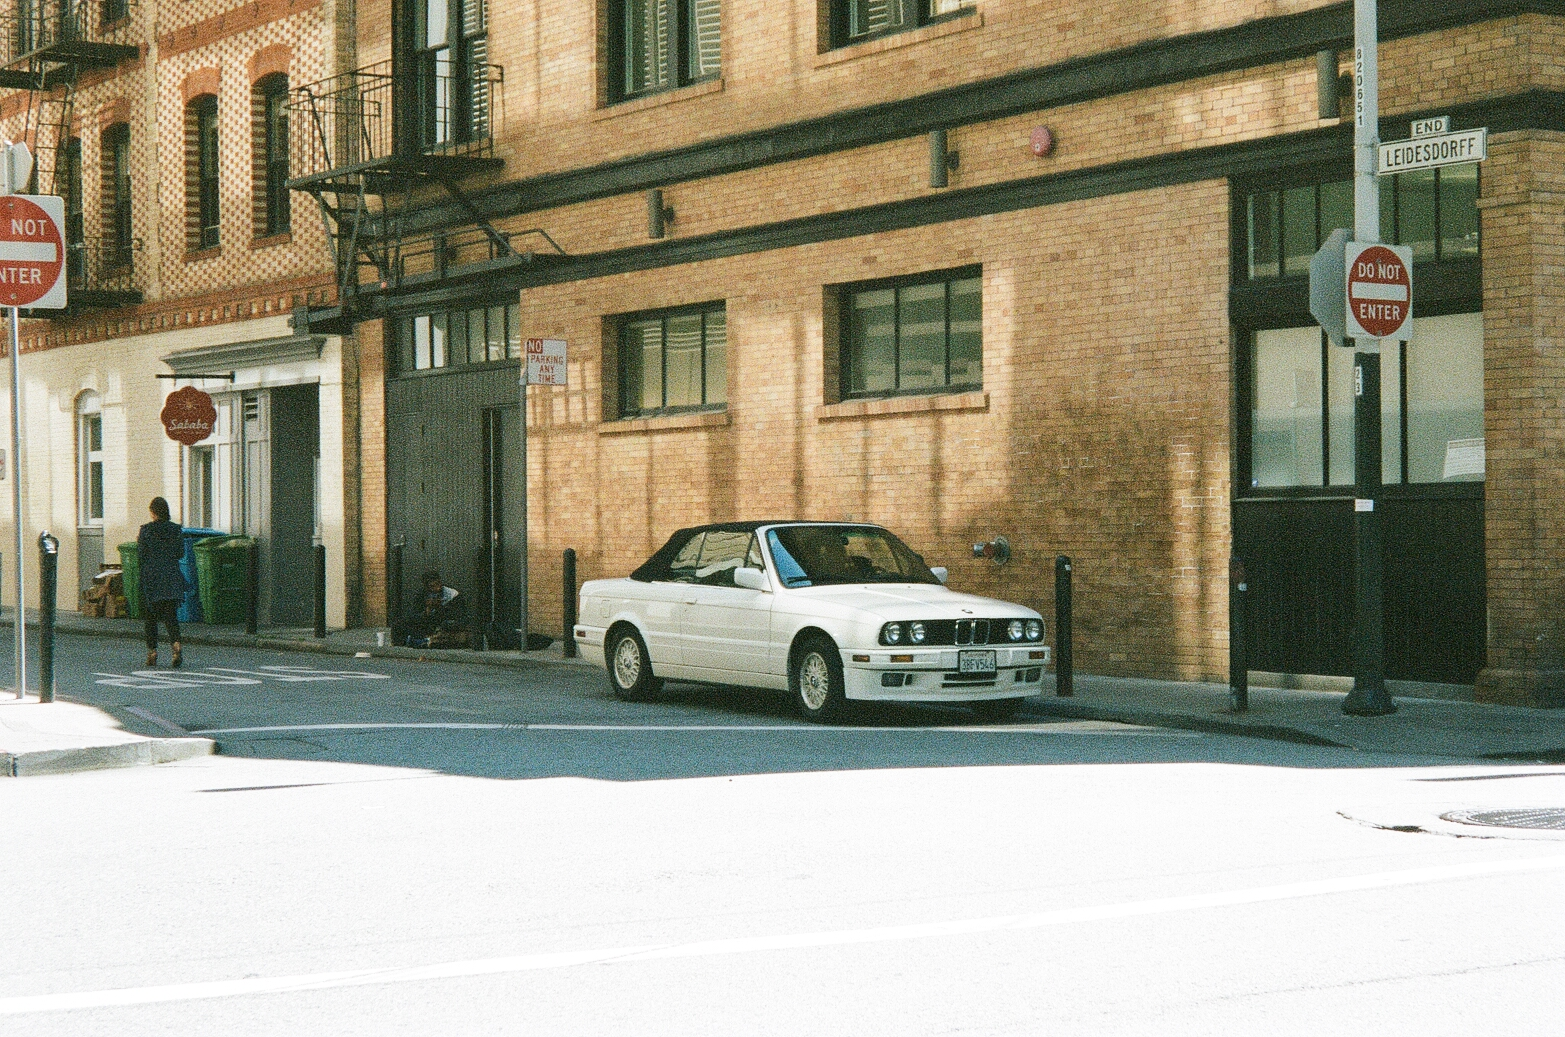 White BMW near brick walls in the streets of SF, captured on Film